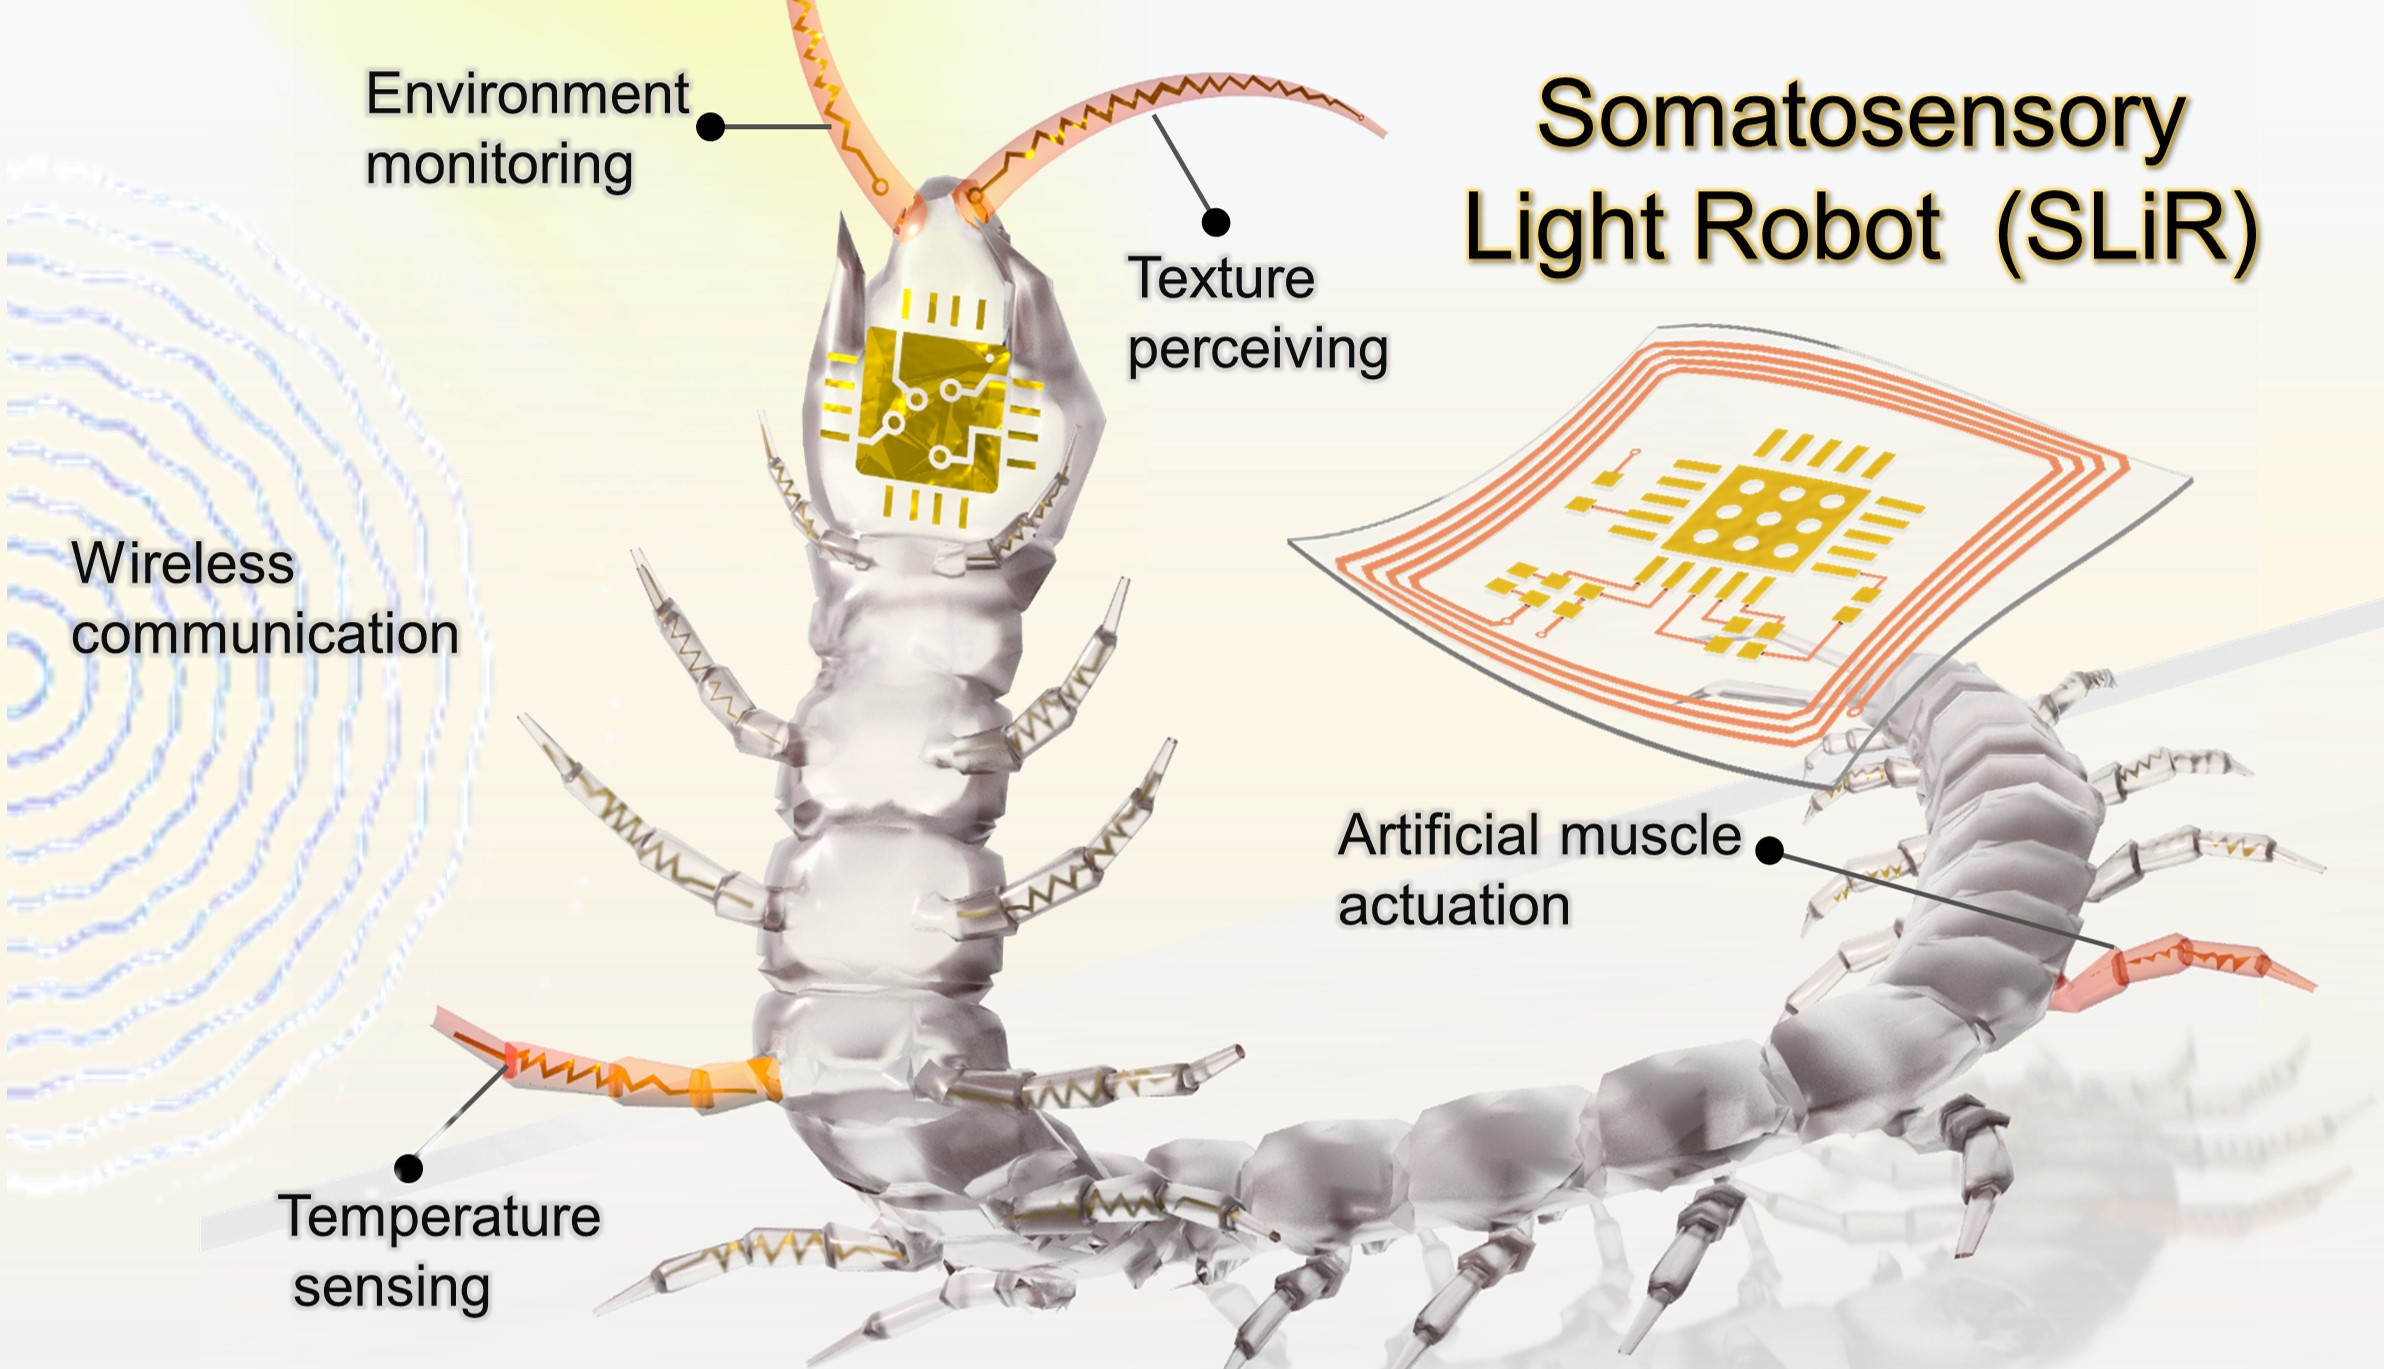 Somatosensory, light-driven, thin-film robots capable of integrated perception and motility